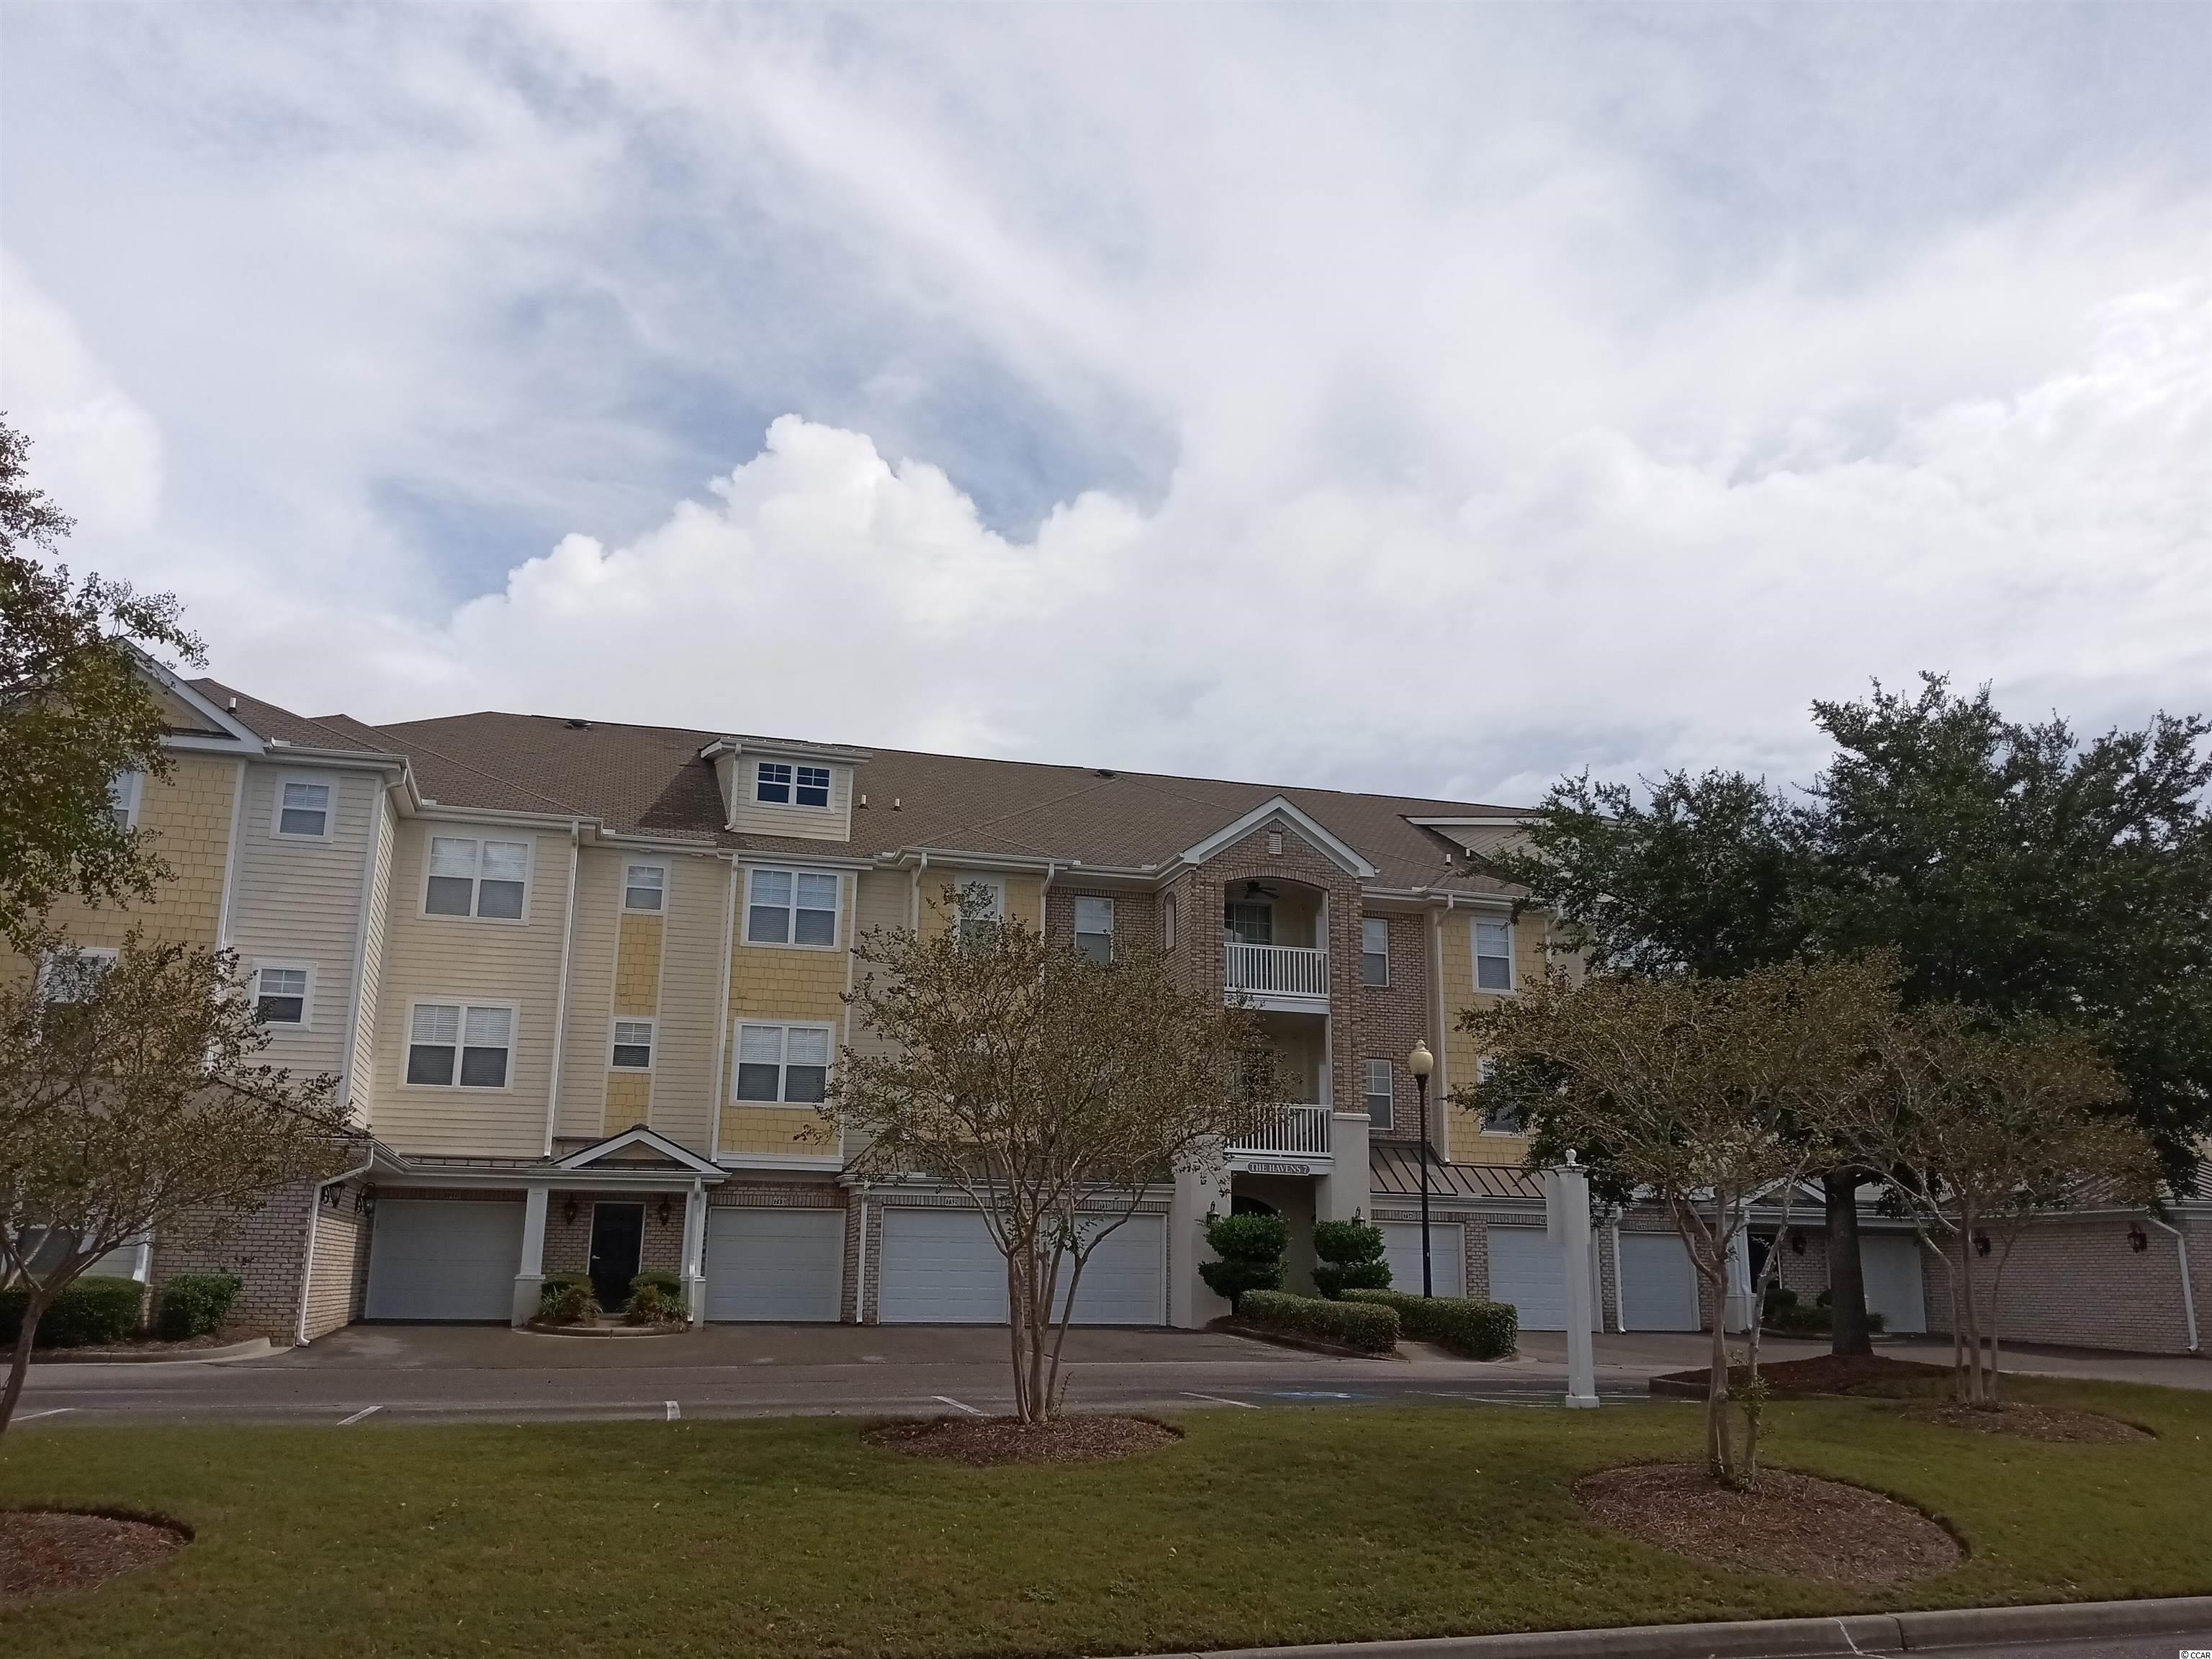 Welcome to this beautiful 3 bedroom 2 bath end unit condo in The Havens.  The unit is very roomy and comes with a one car garage.  The living room and bedrooms have laminate flooring and kitchen and baths are tile.  The balcony offers privacy with the trees and a peak of #11 tee box of the Greg Norman Golf Course.  The building has secured entry and elevator.  The swimming pool and outdoor grills are a short walk away.  Barefoot Resort has four championship golf courses, a large practice facility, restaurants and a private oceanfront cabana with private parking for owners.  This one is a beauty so come take a peak!